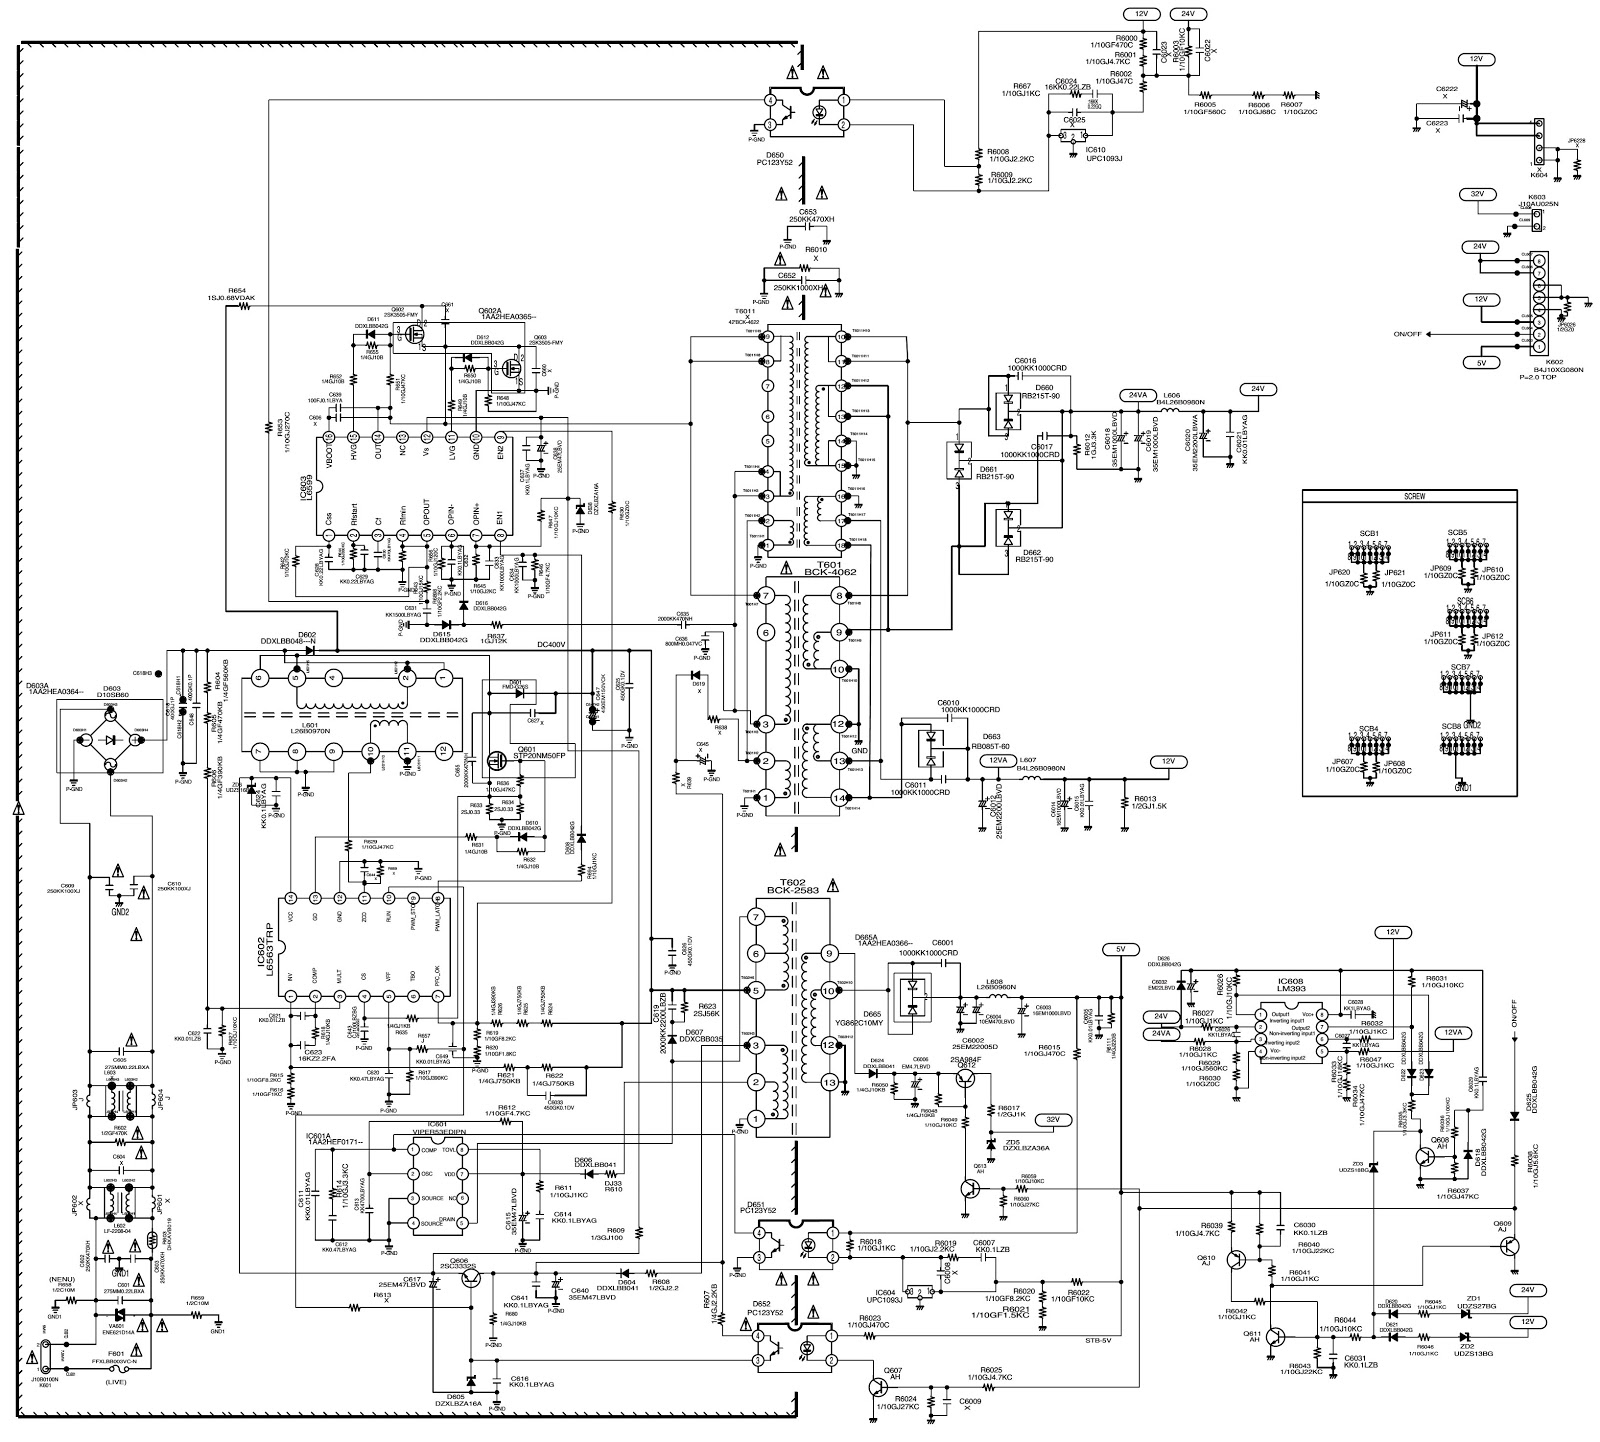 sanyo tv diagram wiring diagram yer sanyo tv diagram sanyo tv diagram [ 1600 x 1442 Pixel ]